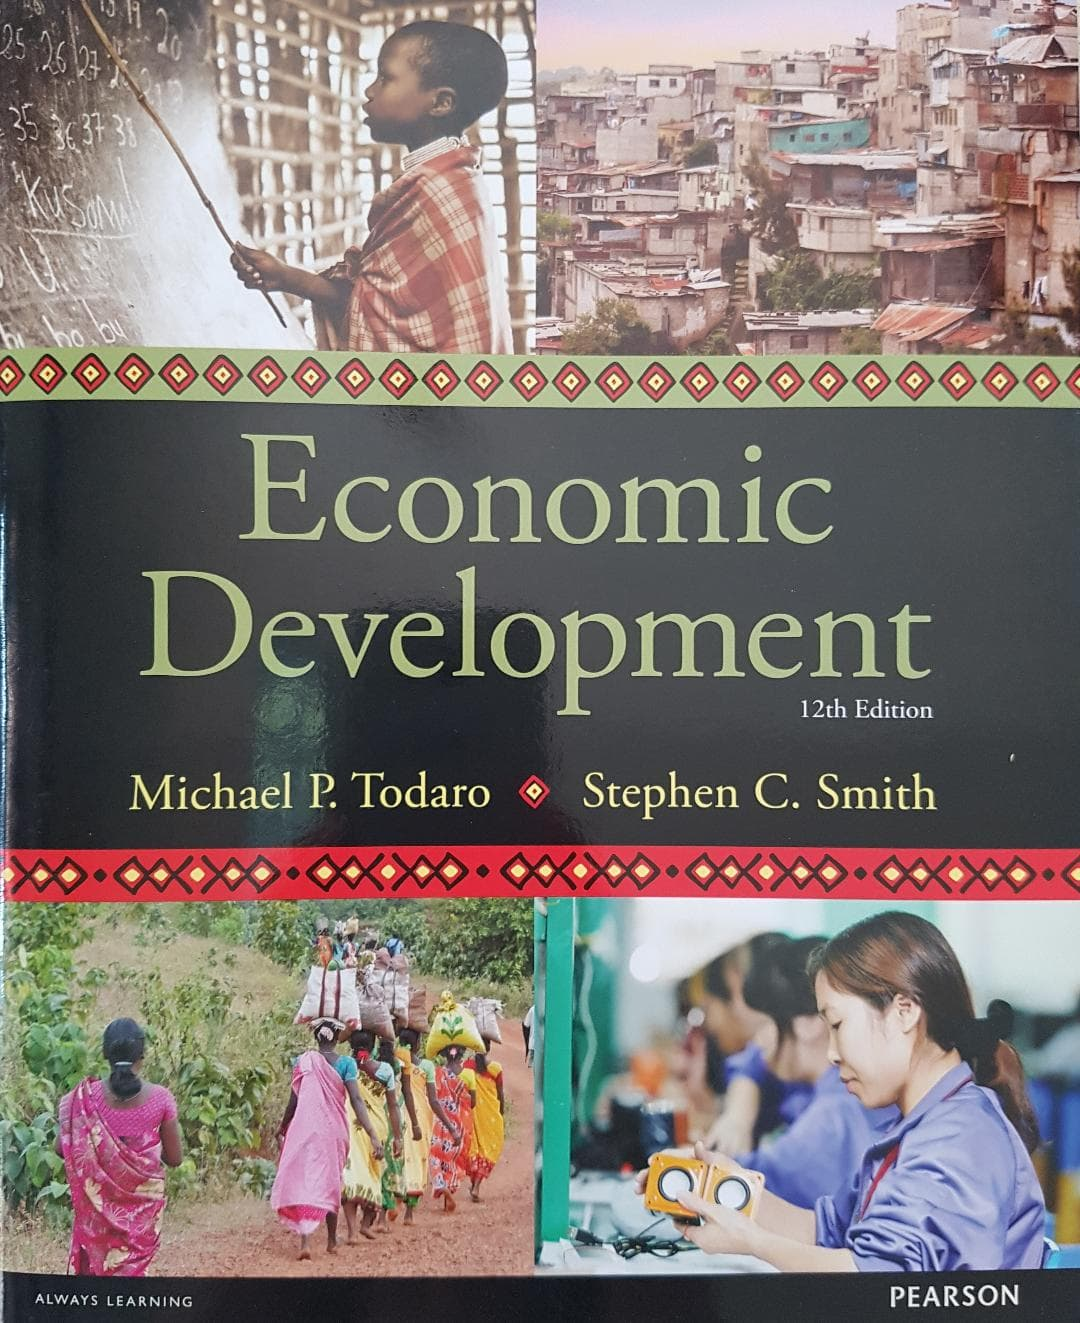 [ORIGINAL] Economic Development 12e - Michael P.Todaro